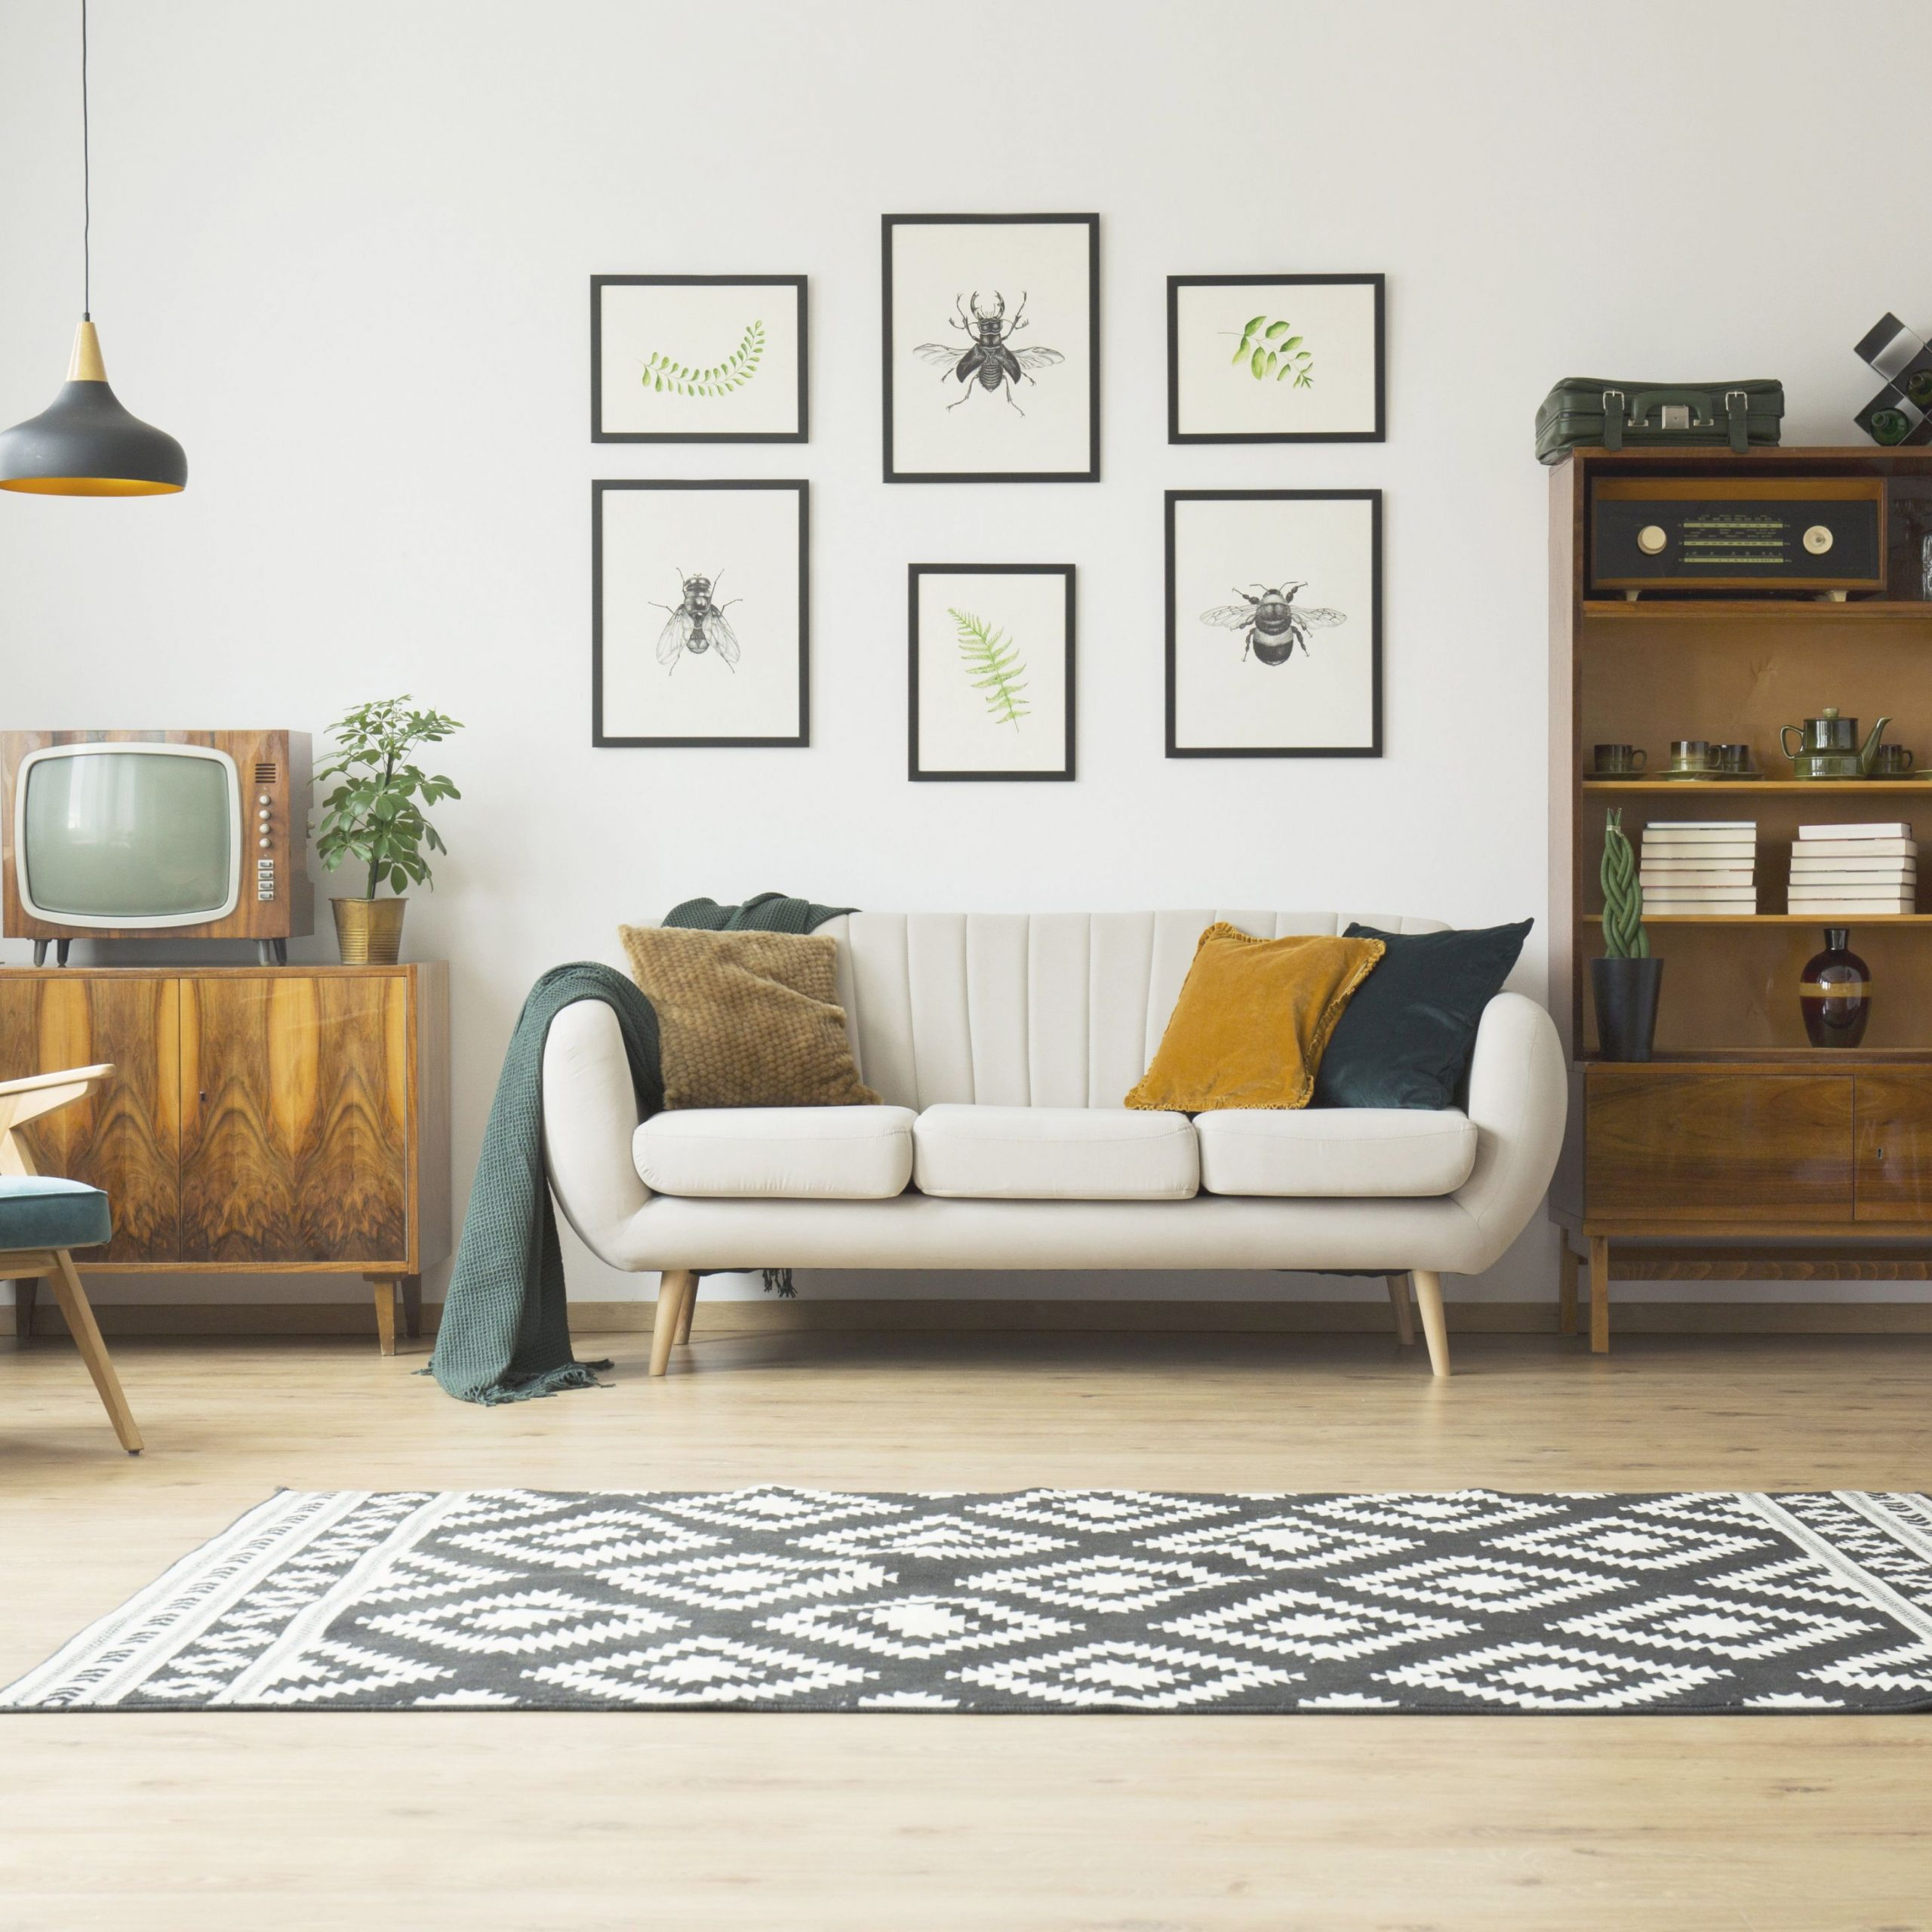 The Beginner'S Guide To Decorating Living Rooms for 15 Unique Gallery For Decorative Items For Living Room